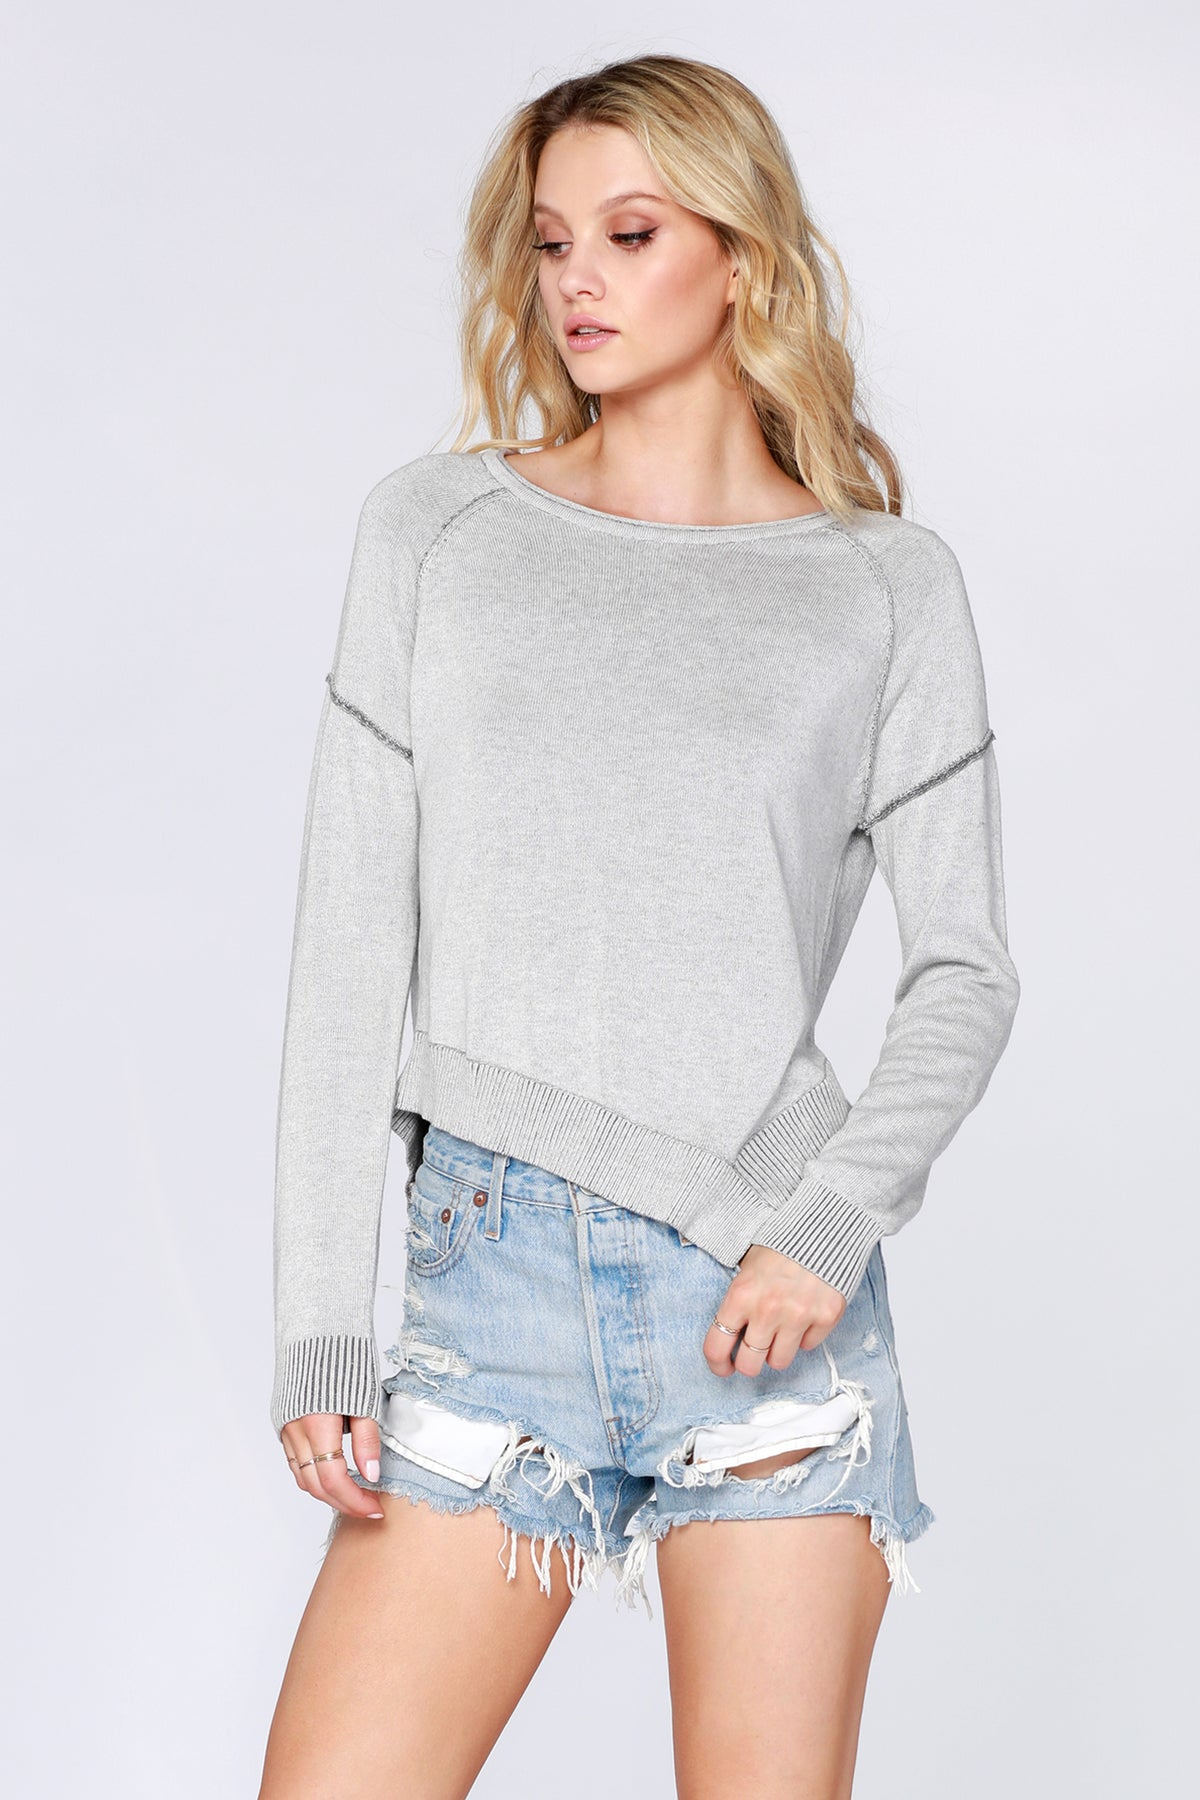 Plaited Asymmetrical Hem Sweater - bobi Los Angeles